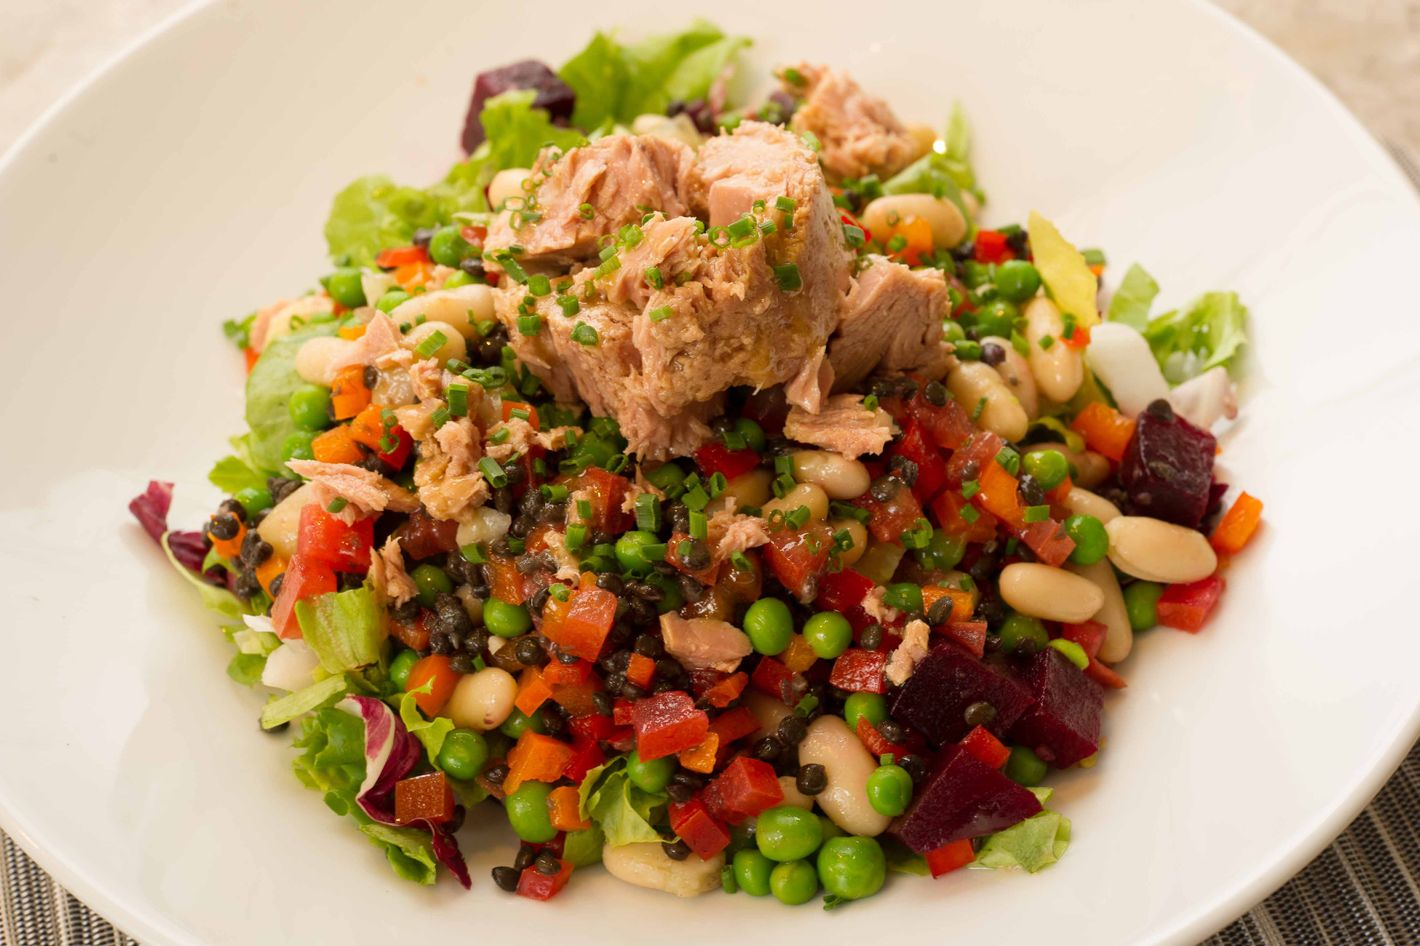 The Fred's Pressman salad: cherry tomatoes, cucumber, peas, lentils, white beans, and beets with Italian tuna.